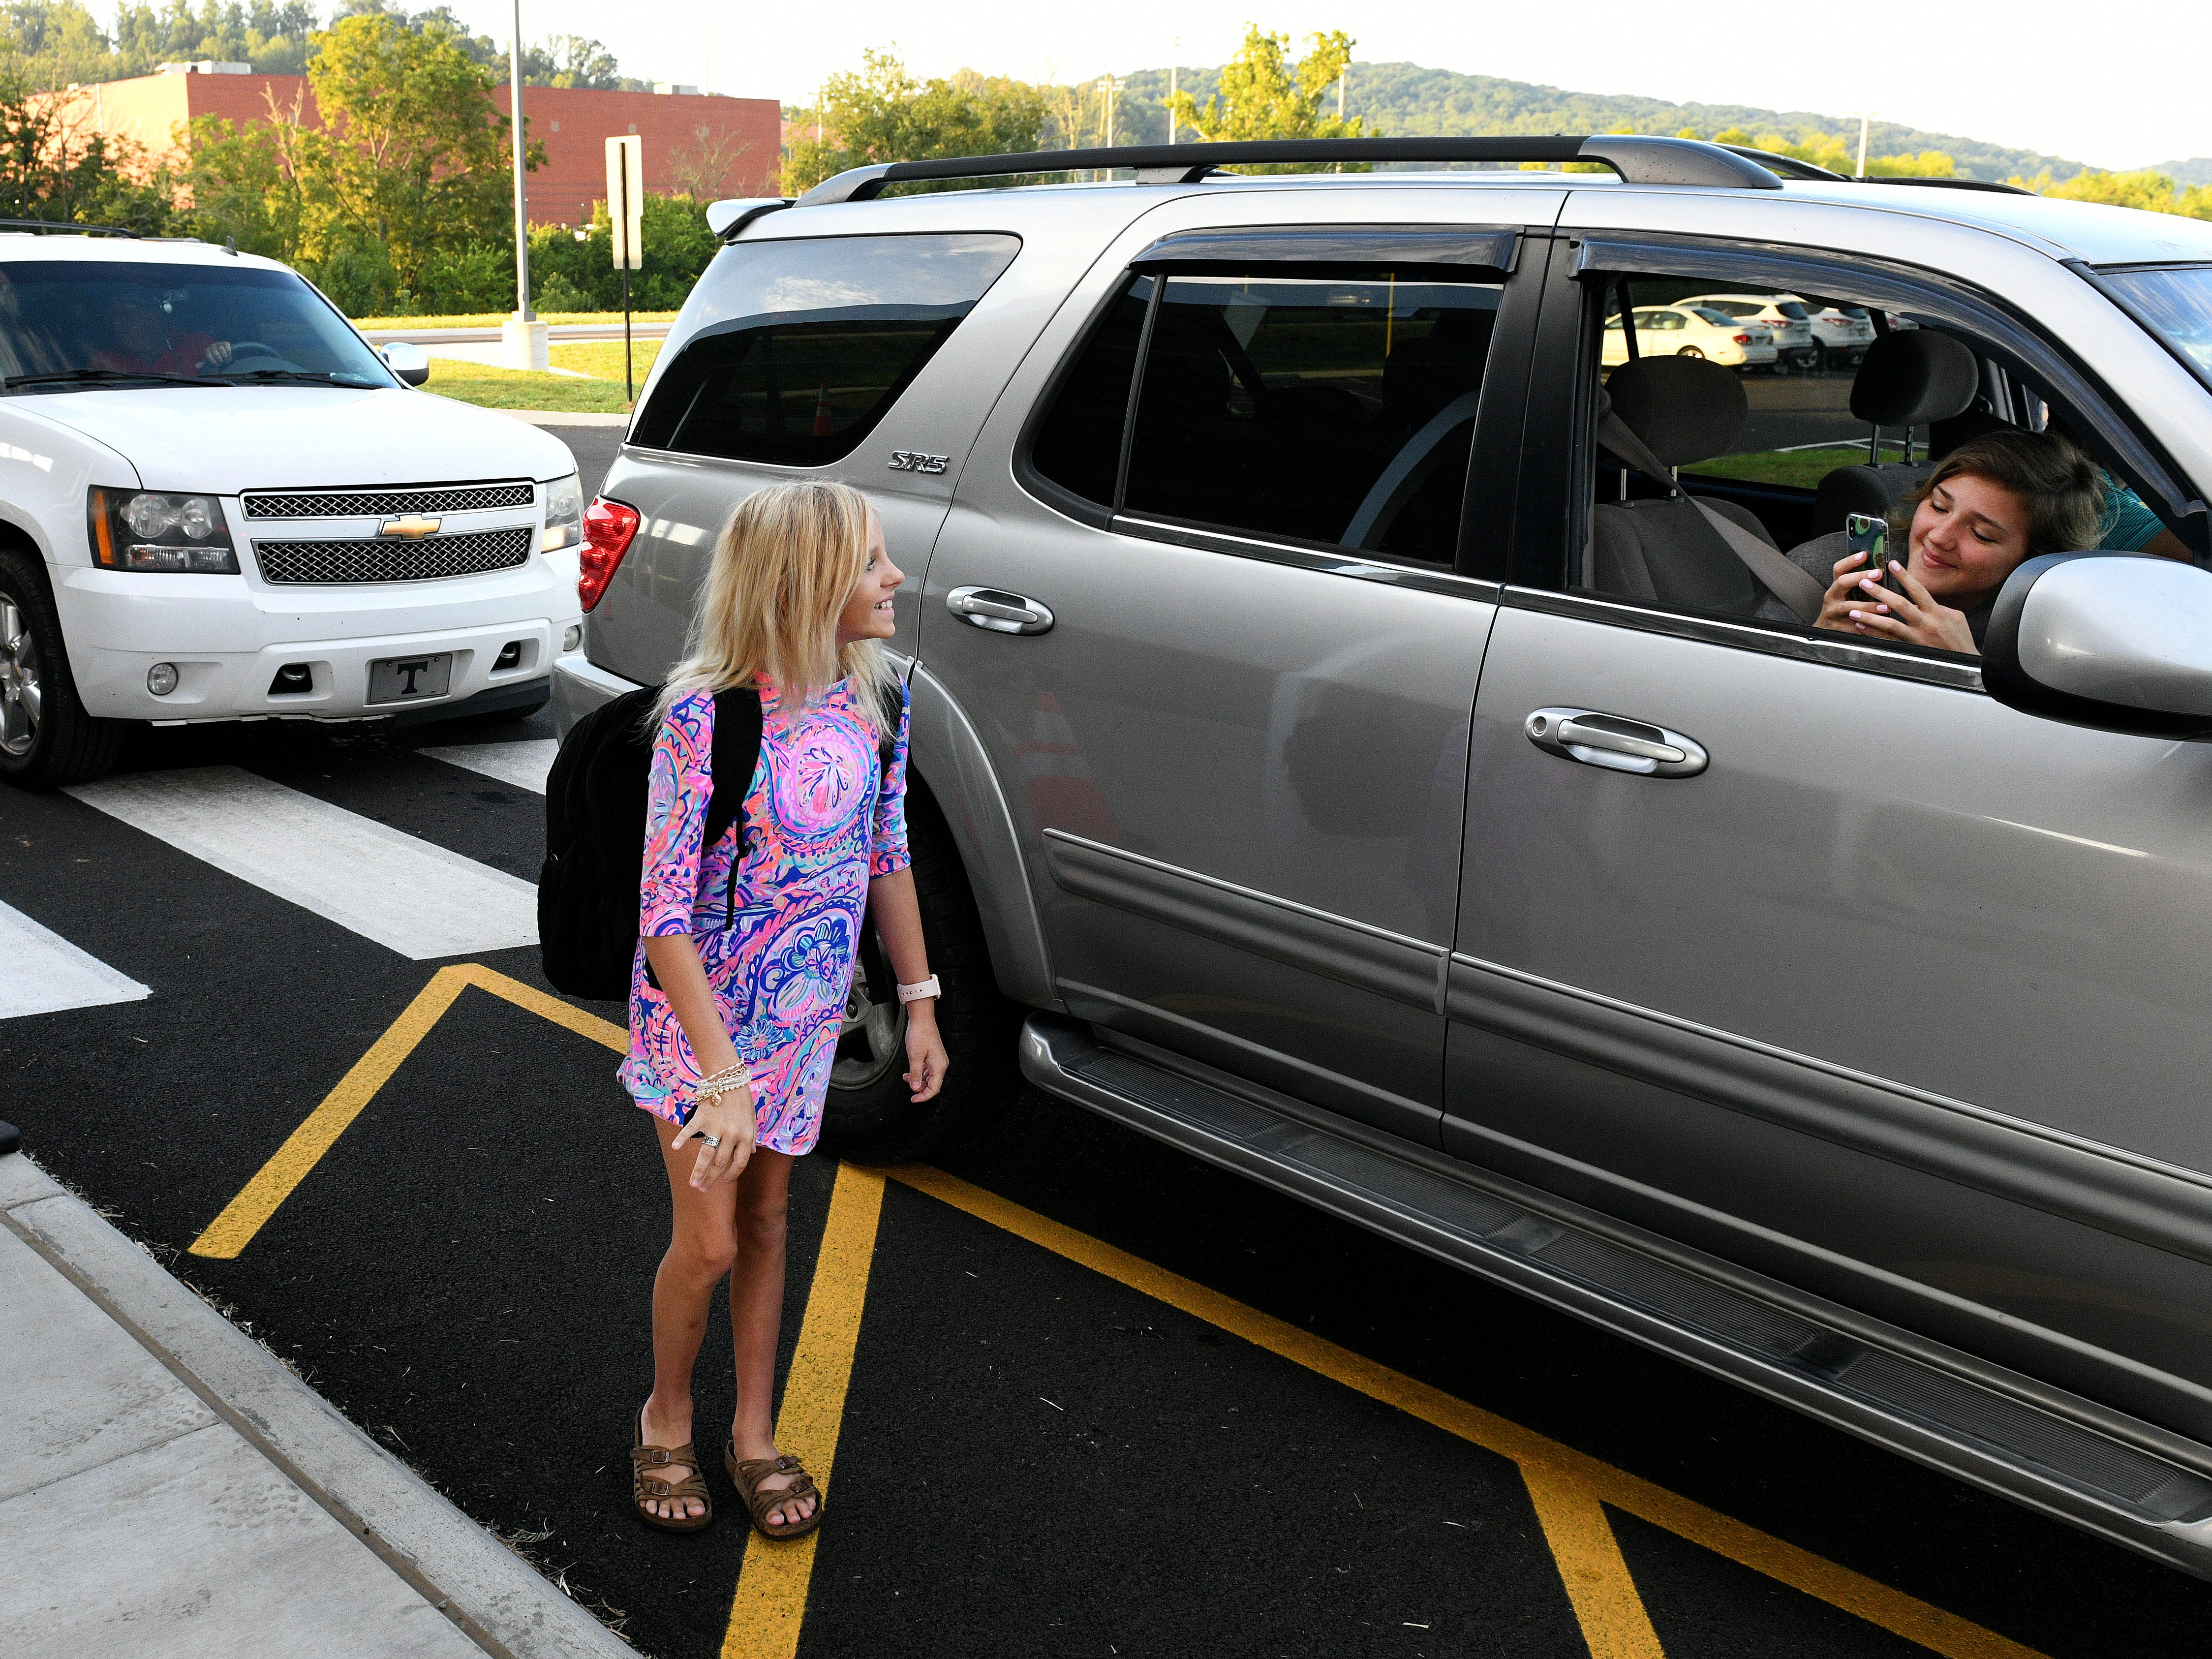 Gracie Mayes, 12, waits for her sister to take a photo as she arrived for the first day at Hardin Valley Middle School Wednesday, August 8, 2018.